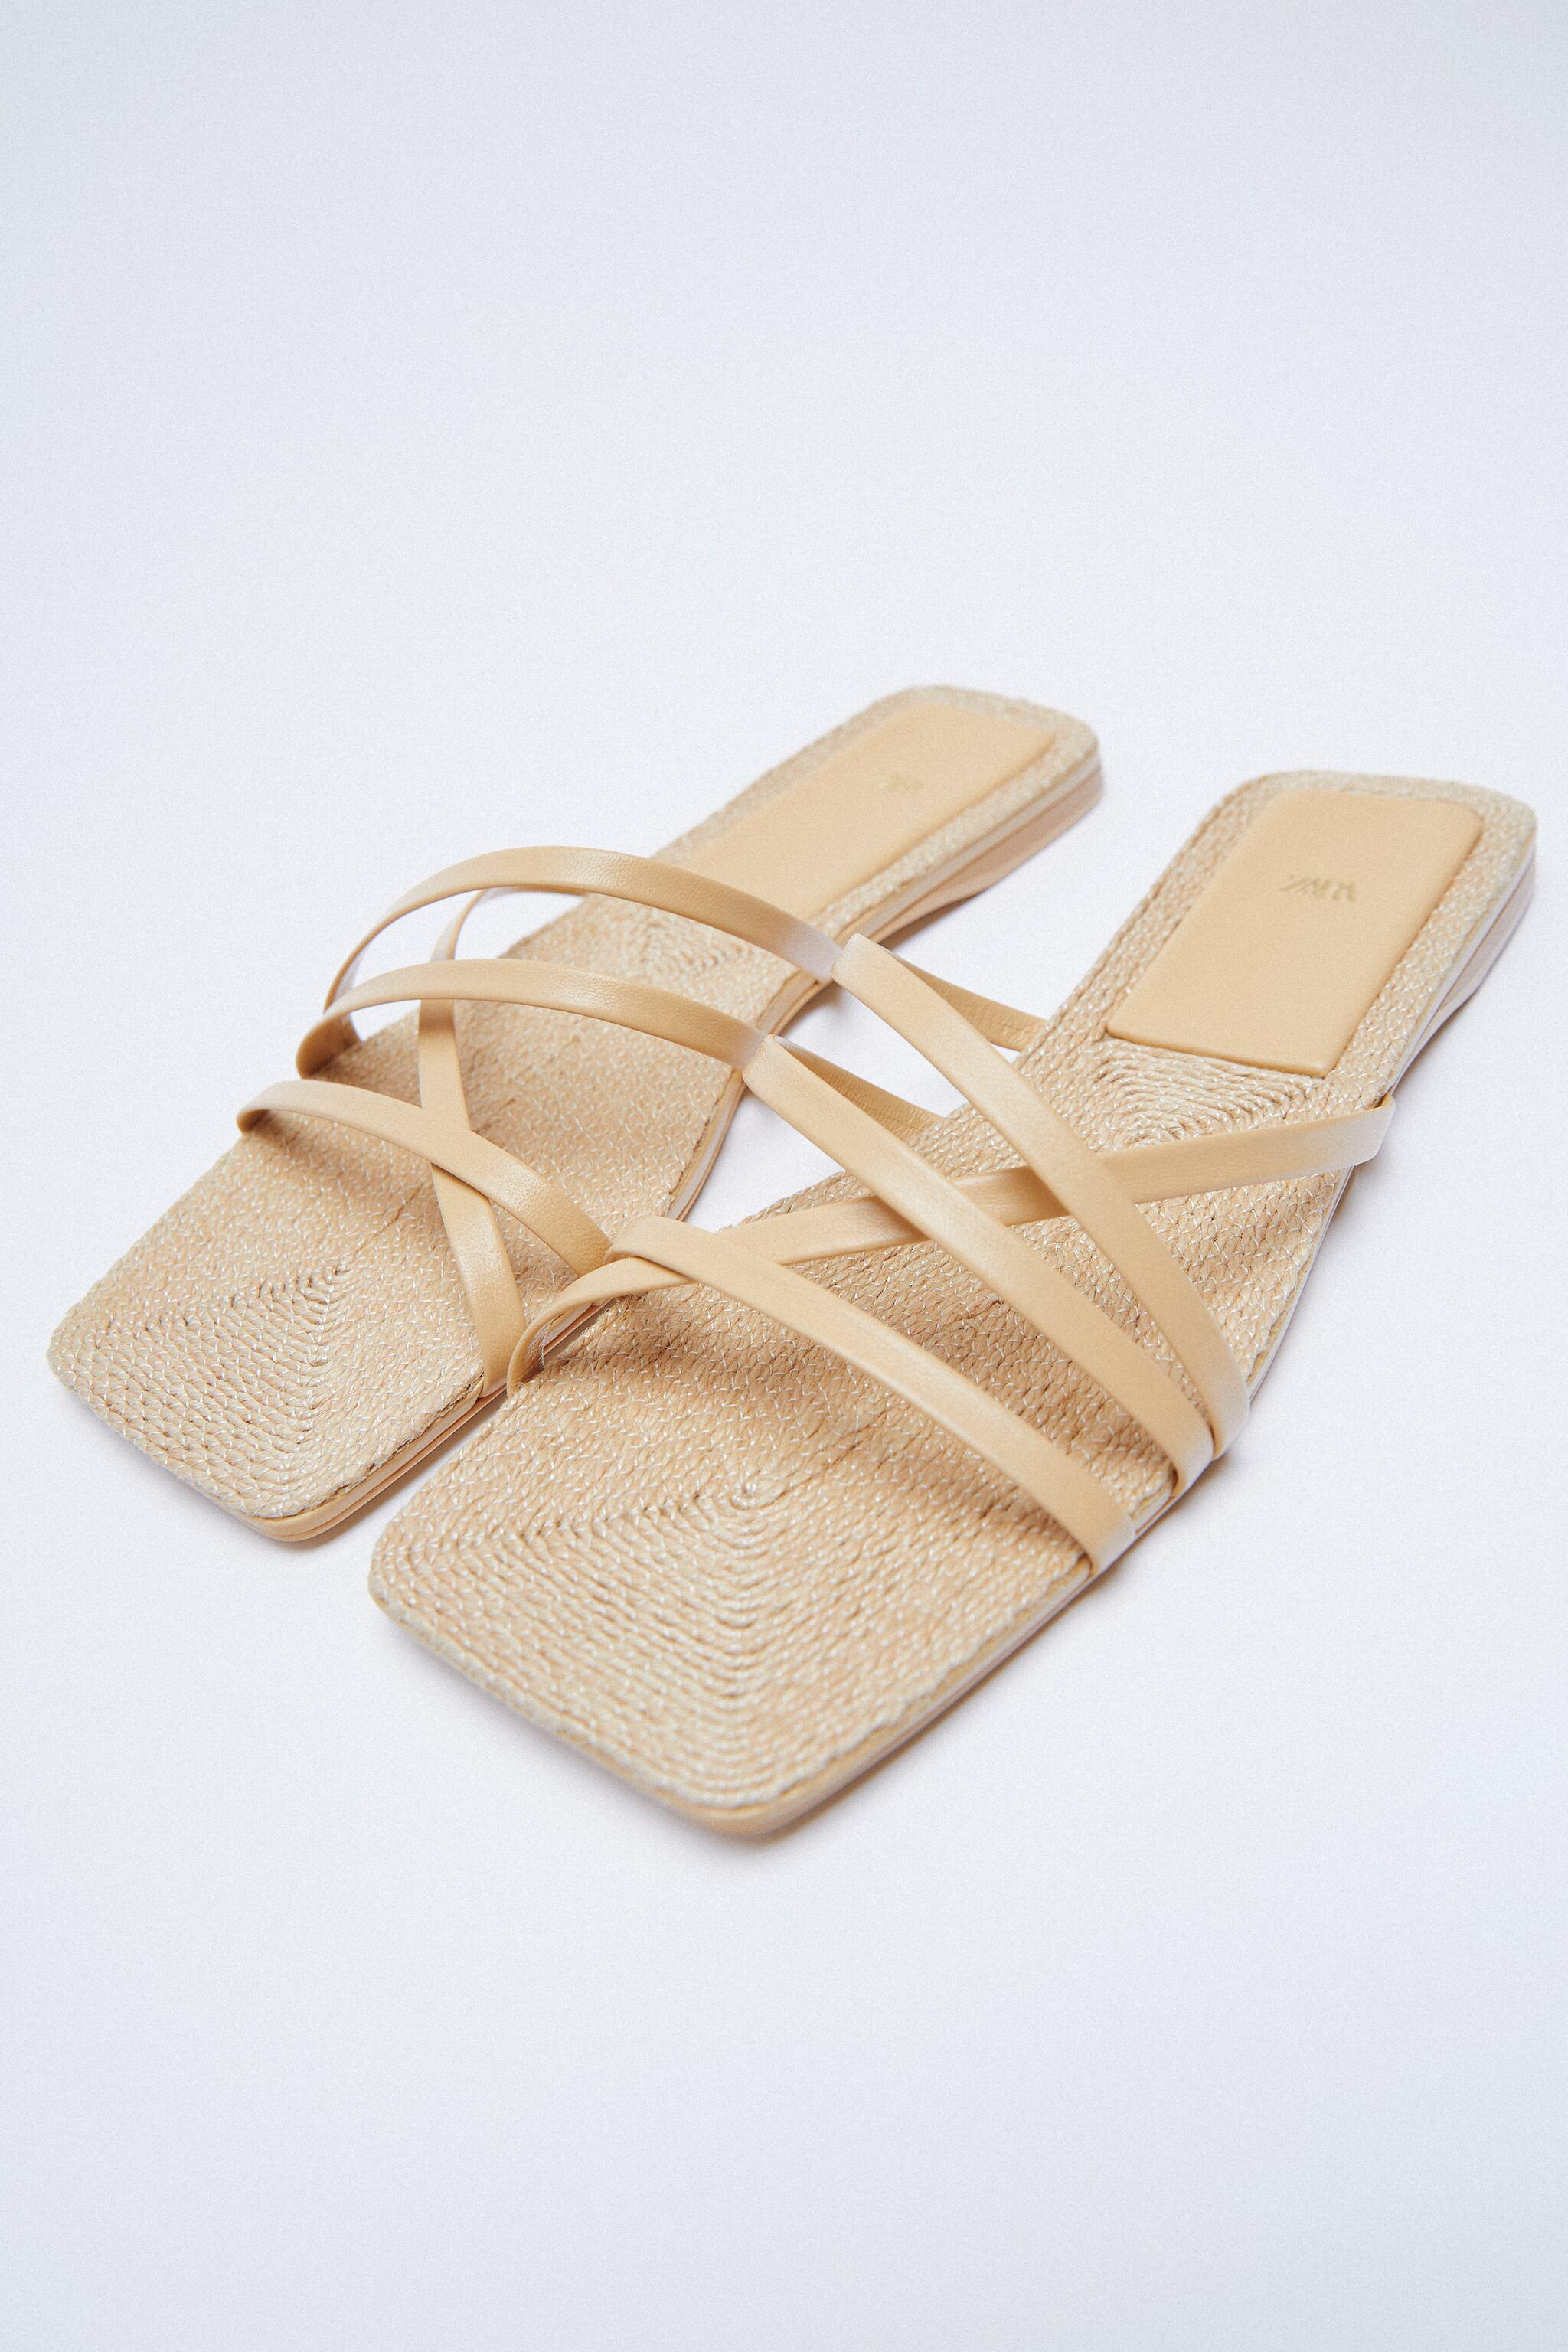 LOW HEEL LEATHER SANDALS WITH JUTE INSOLE 5